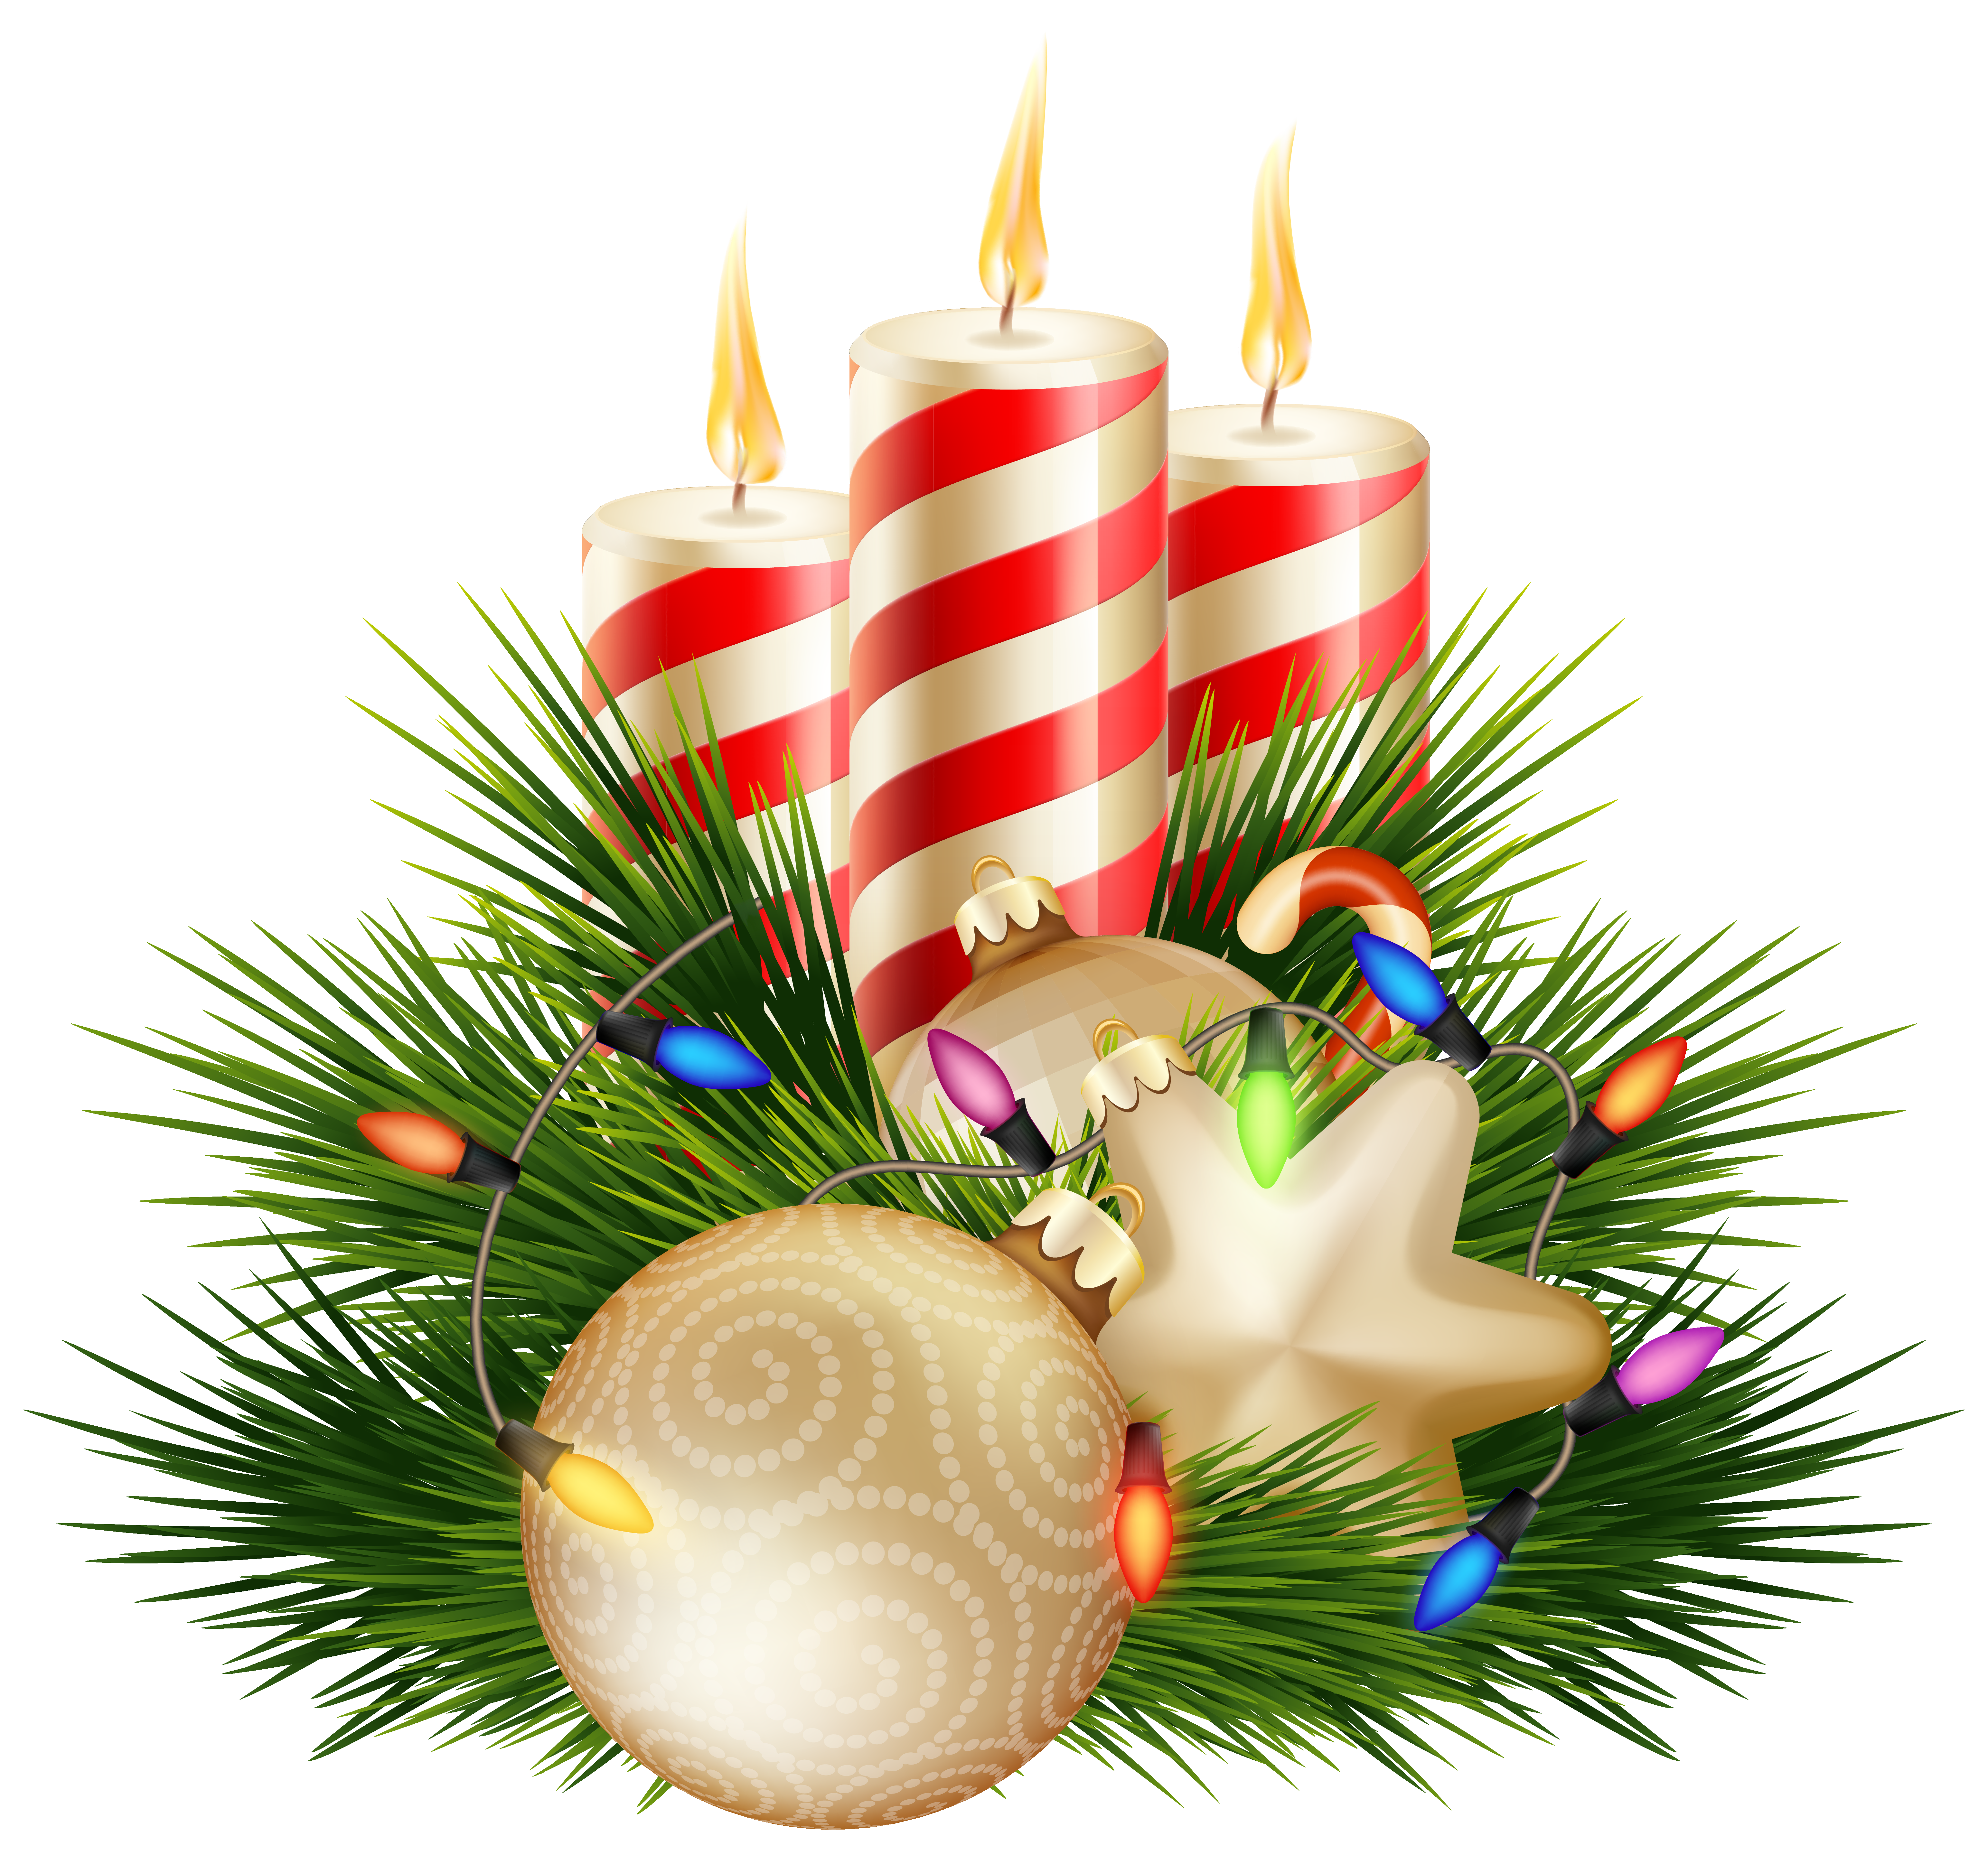 Christmas candlelight clipart clip transparent library 28+ Collection of Christmas Candle Image Clipart | High quality ... clip transparent library